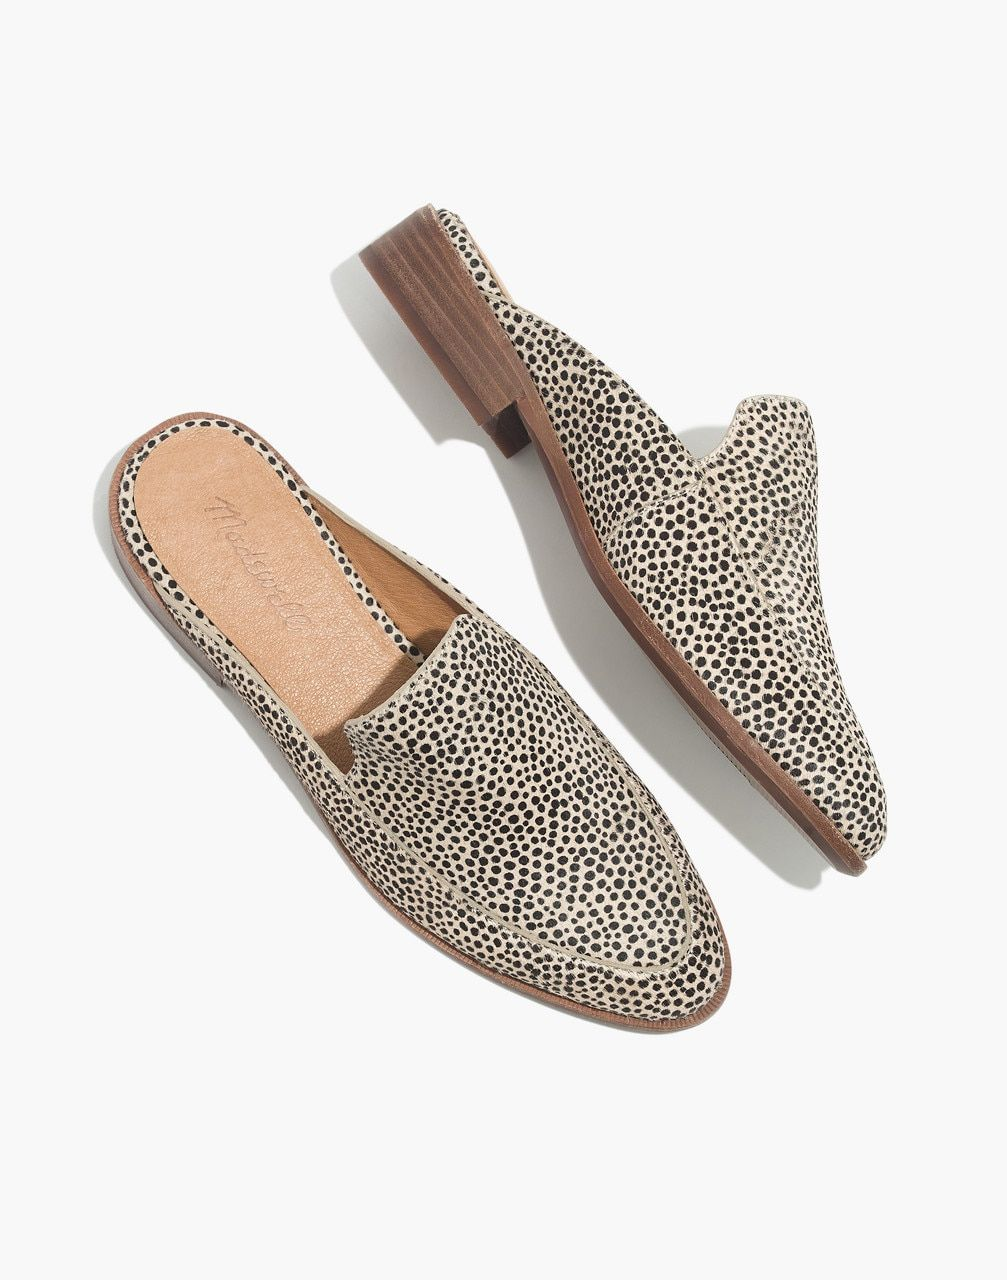 1416450f94fb The Frances Loafer Mule in Spotted Calf Hair in dried flax multi image 1